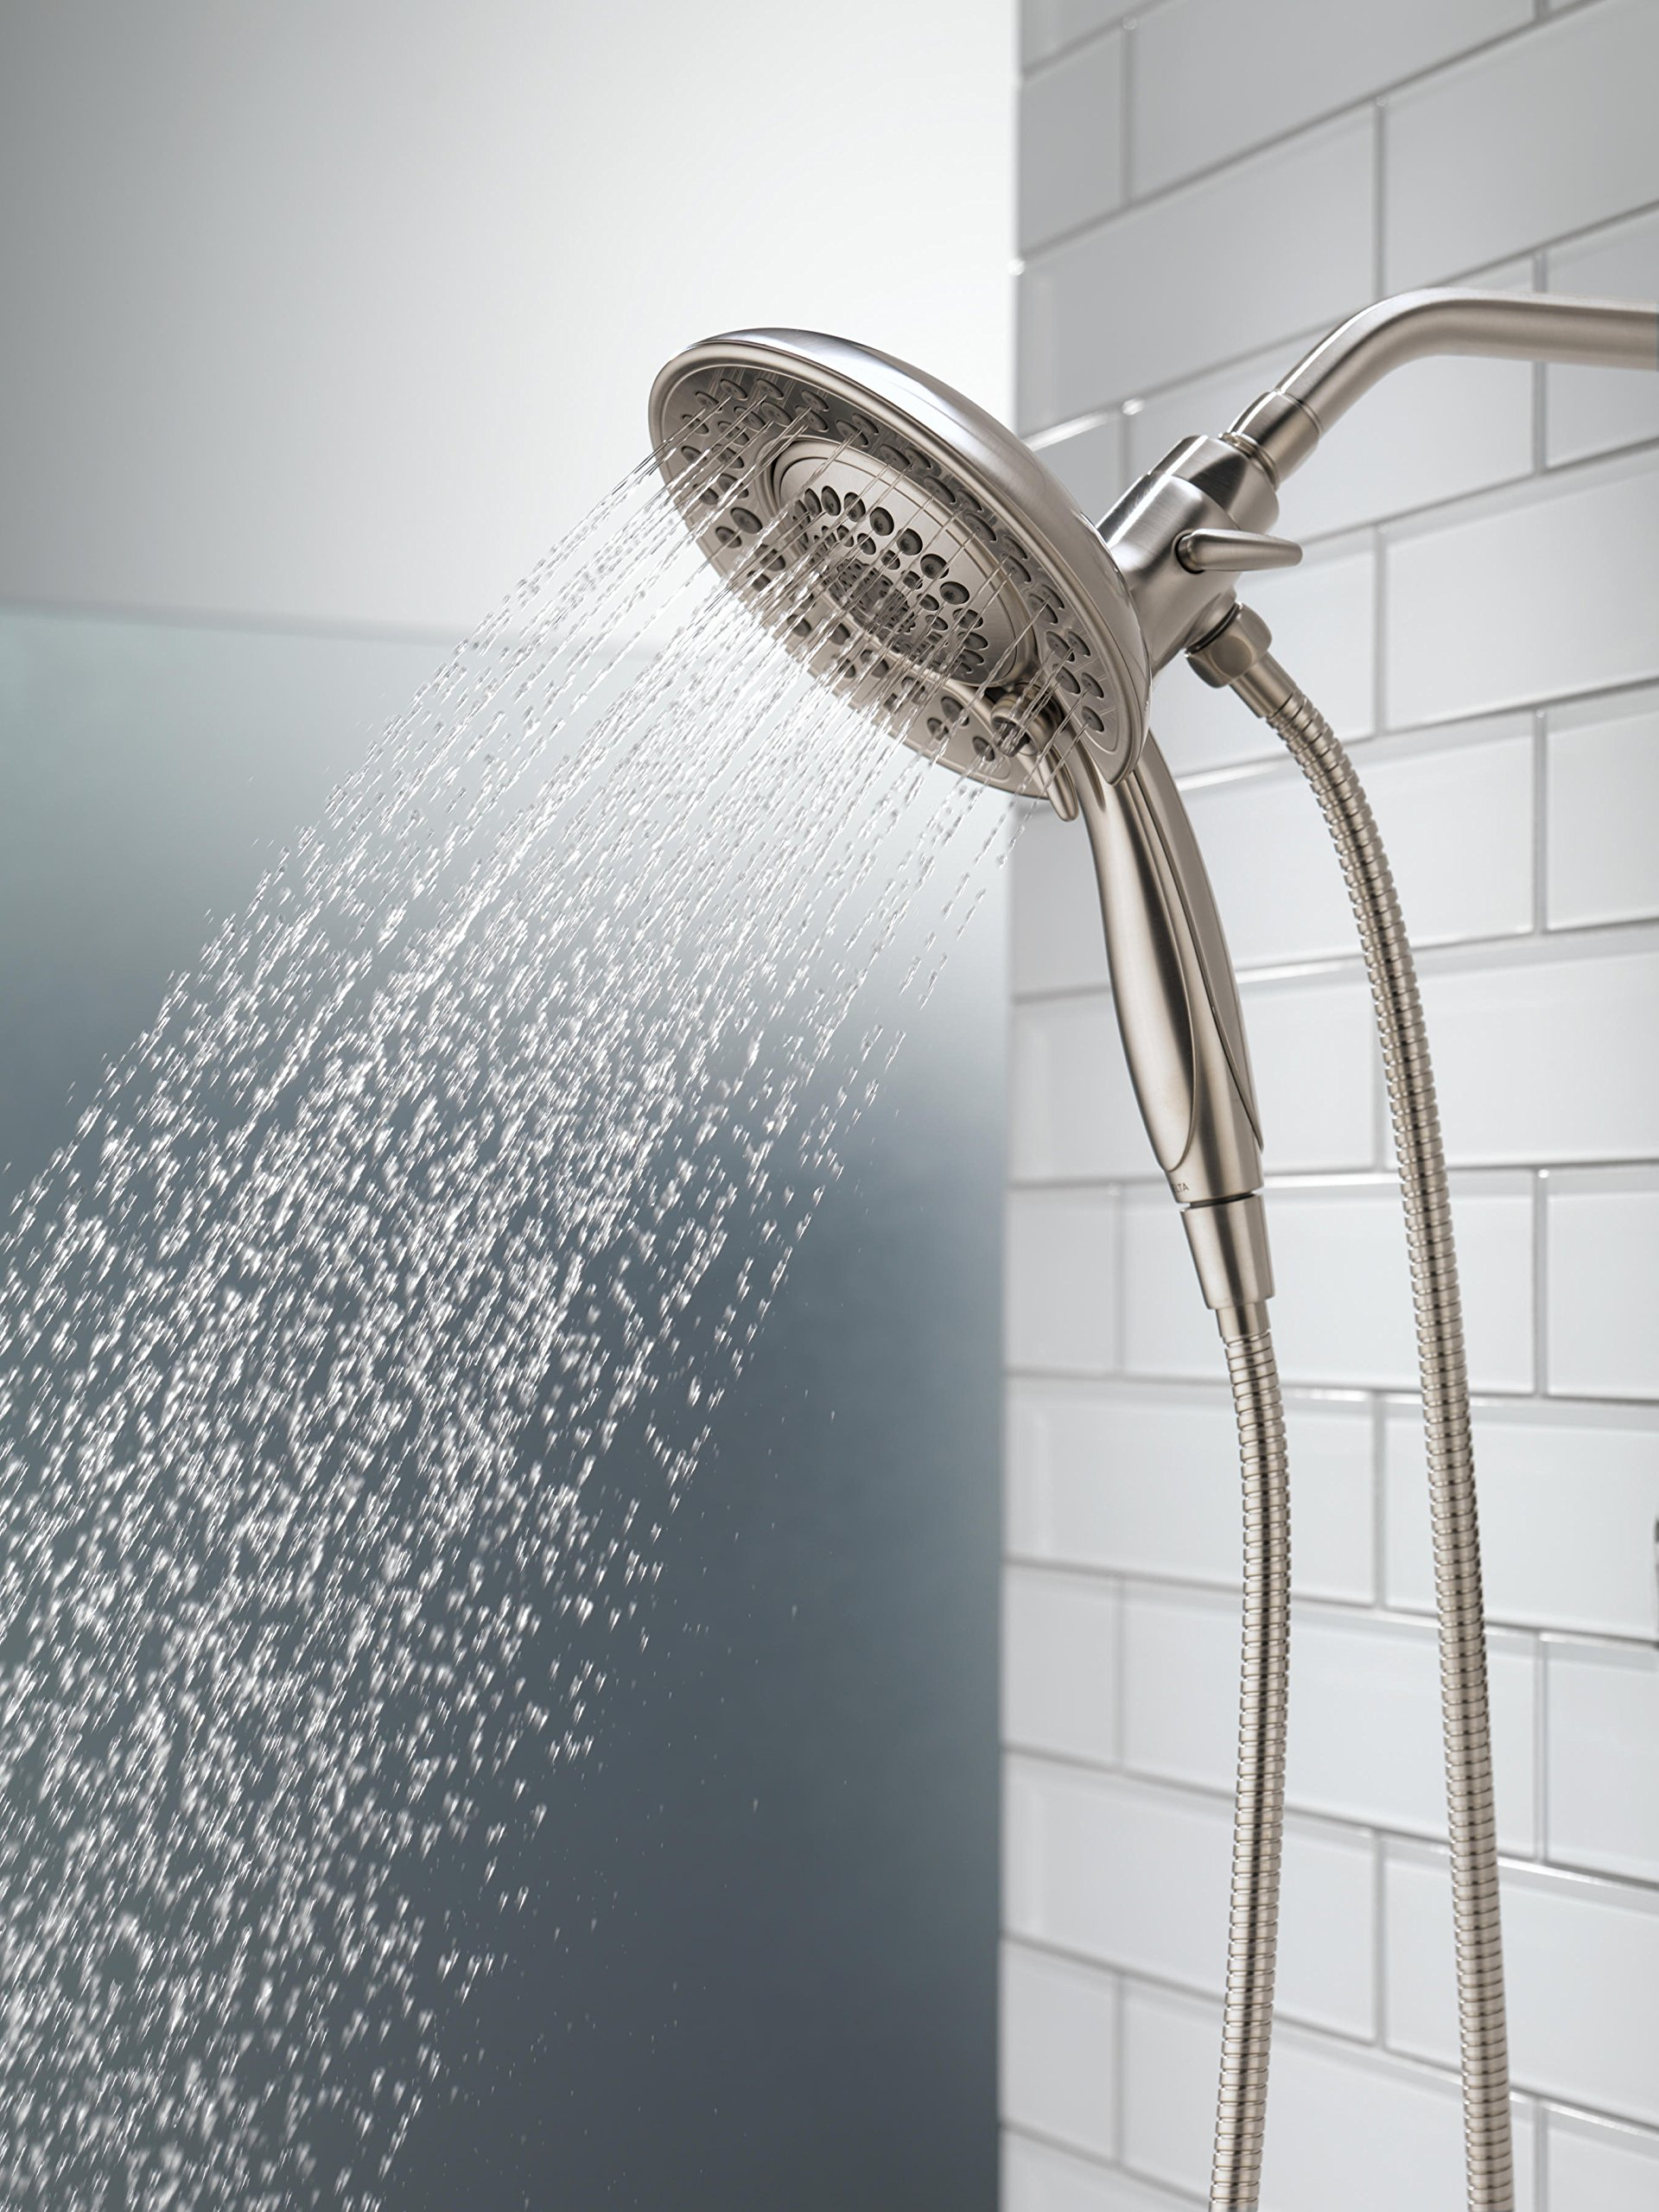 Delta 58569-SS-PK 5-Spray Touch Clean In2ition 2-in-1 Hand Held Shower Head with Hose, Stainless by DELTA FAUCET (Image #7)